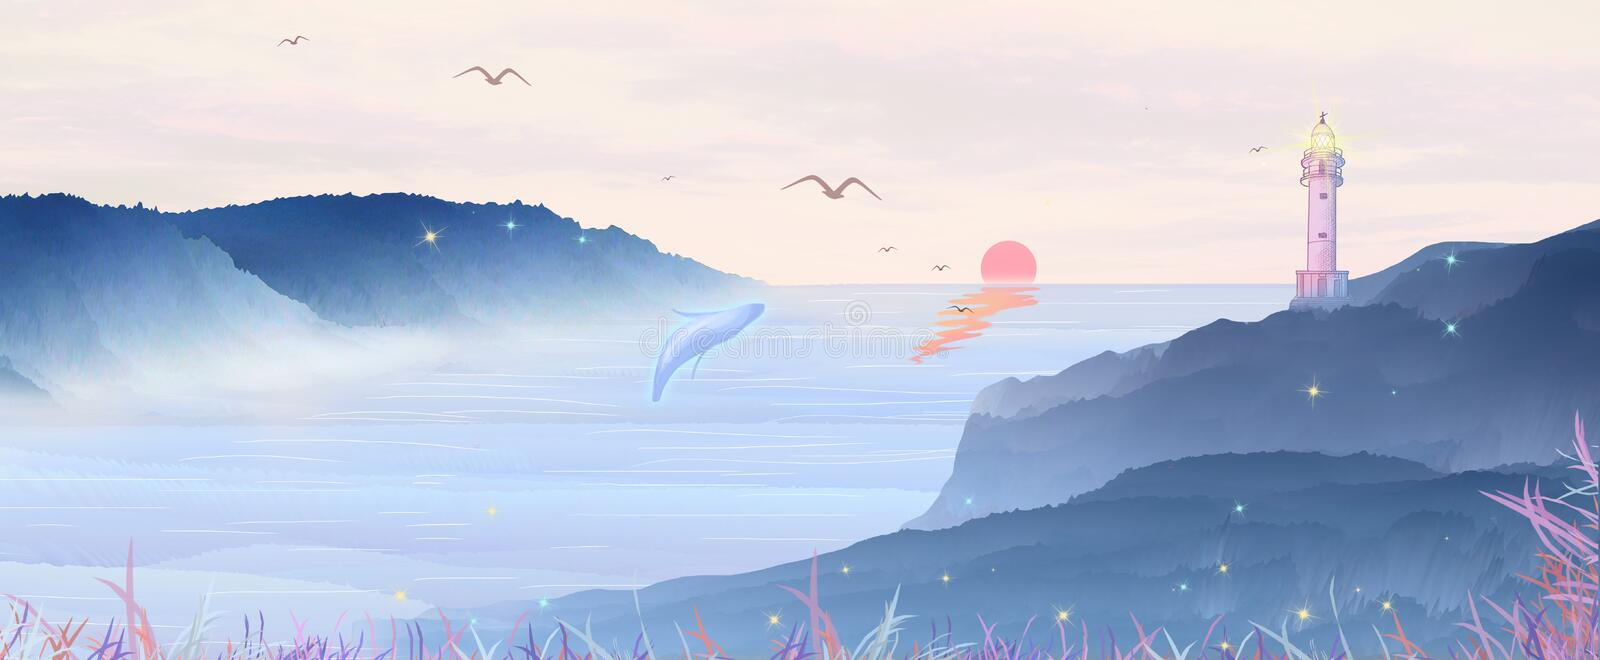 The morning sun rises from the sea. The lighthouse on the mountain shines on the distant ship, the whale is flapping the spray. What a beautiful and fascinating stock illustration